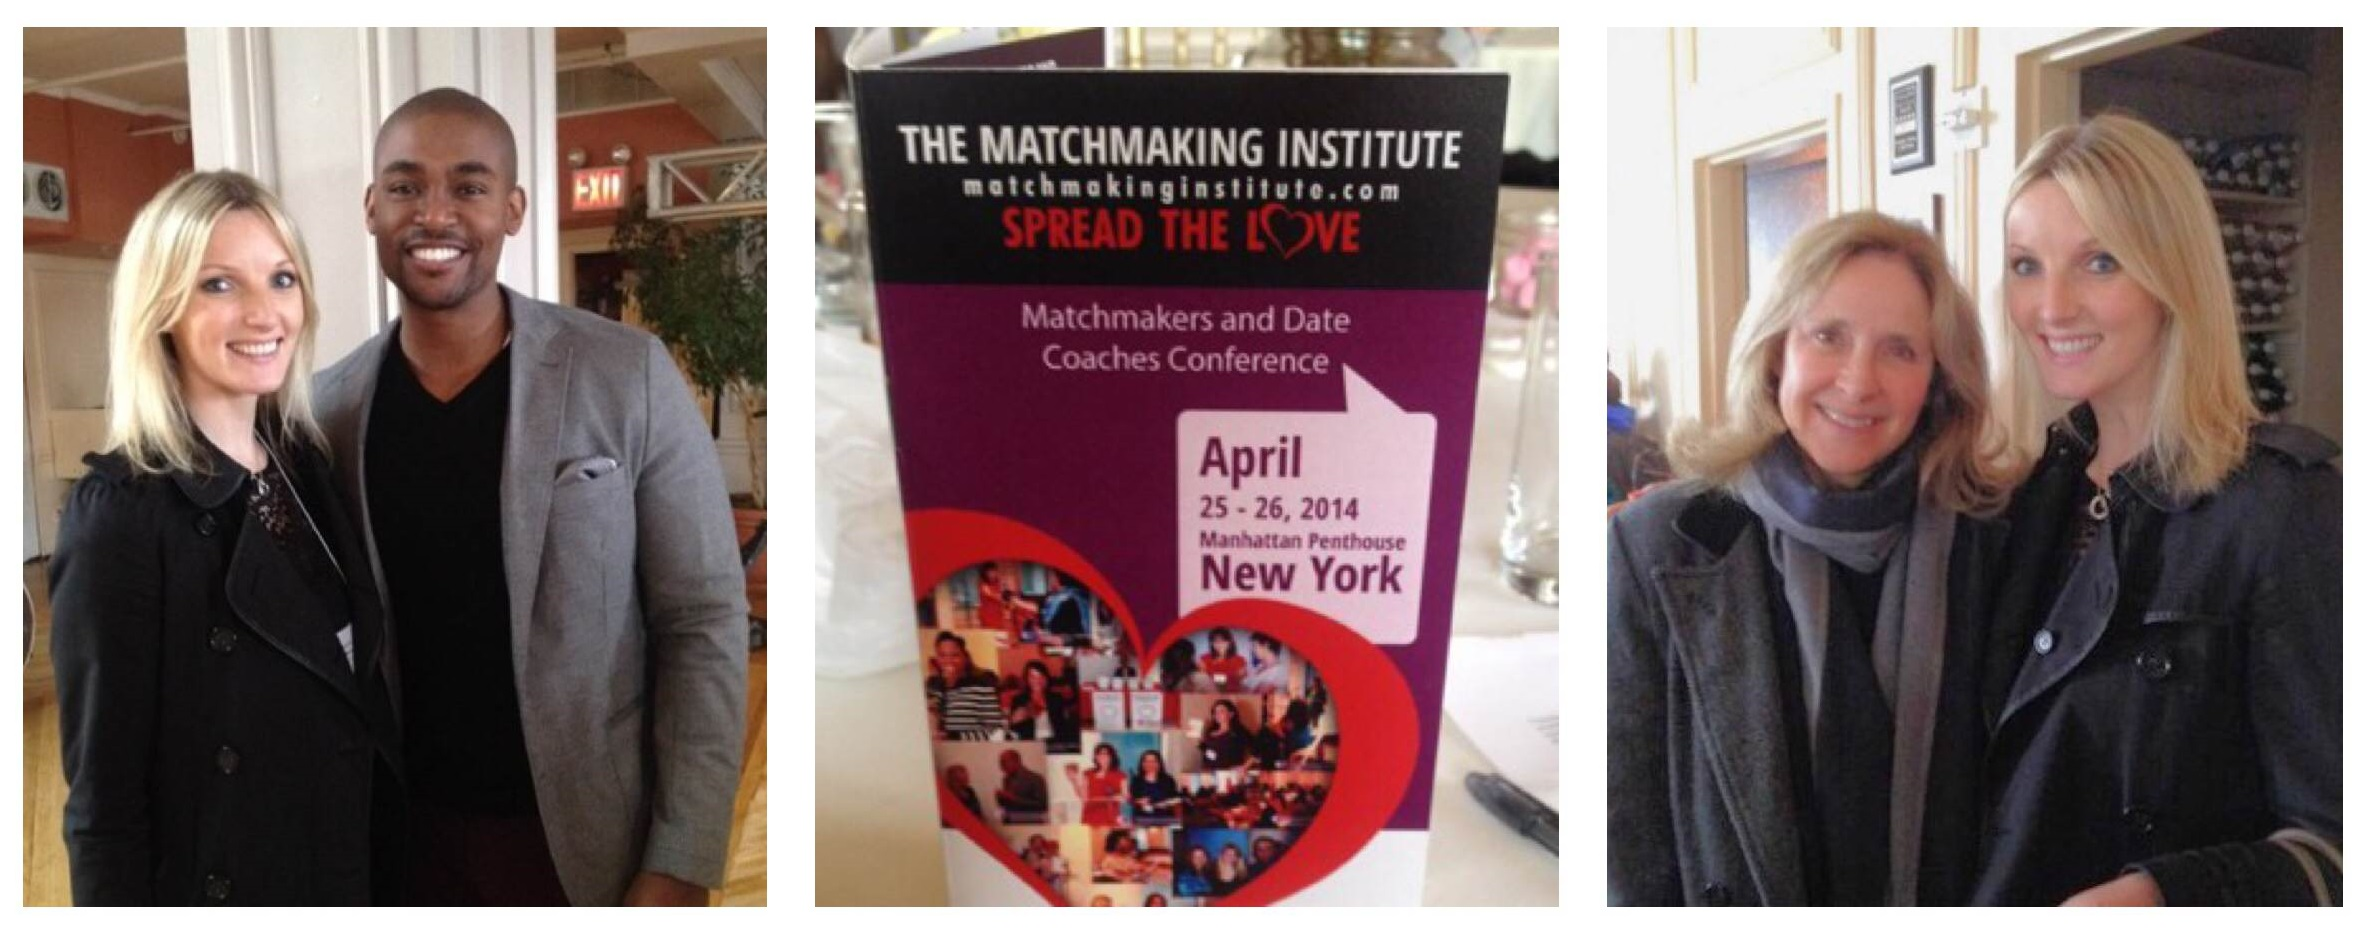 Matchmaking conference 2014